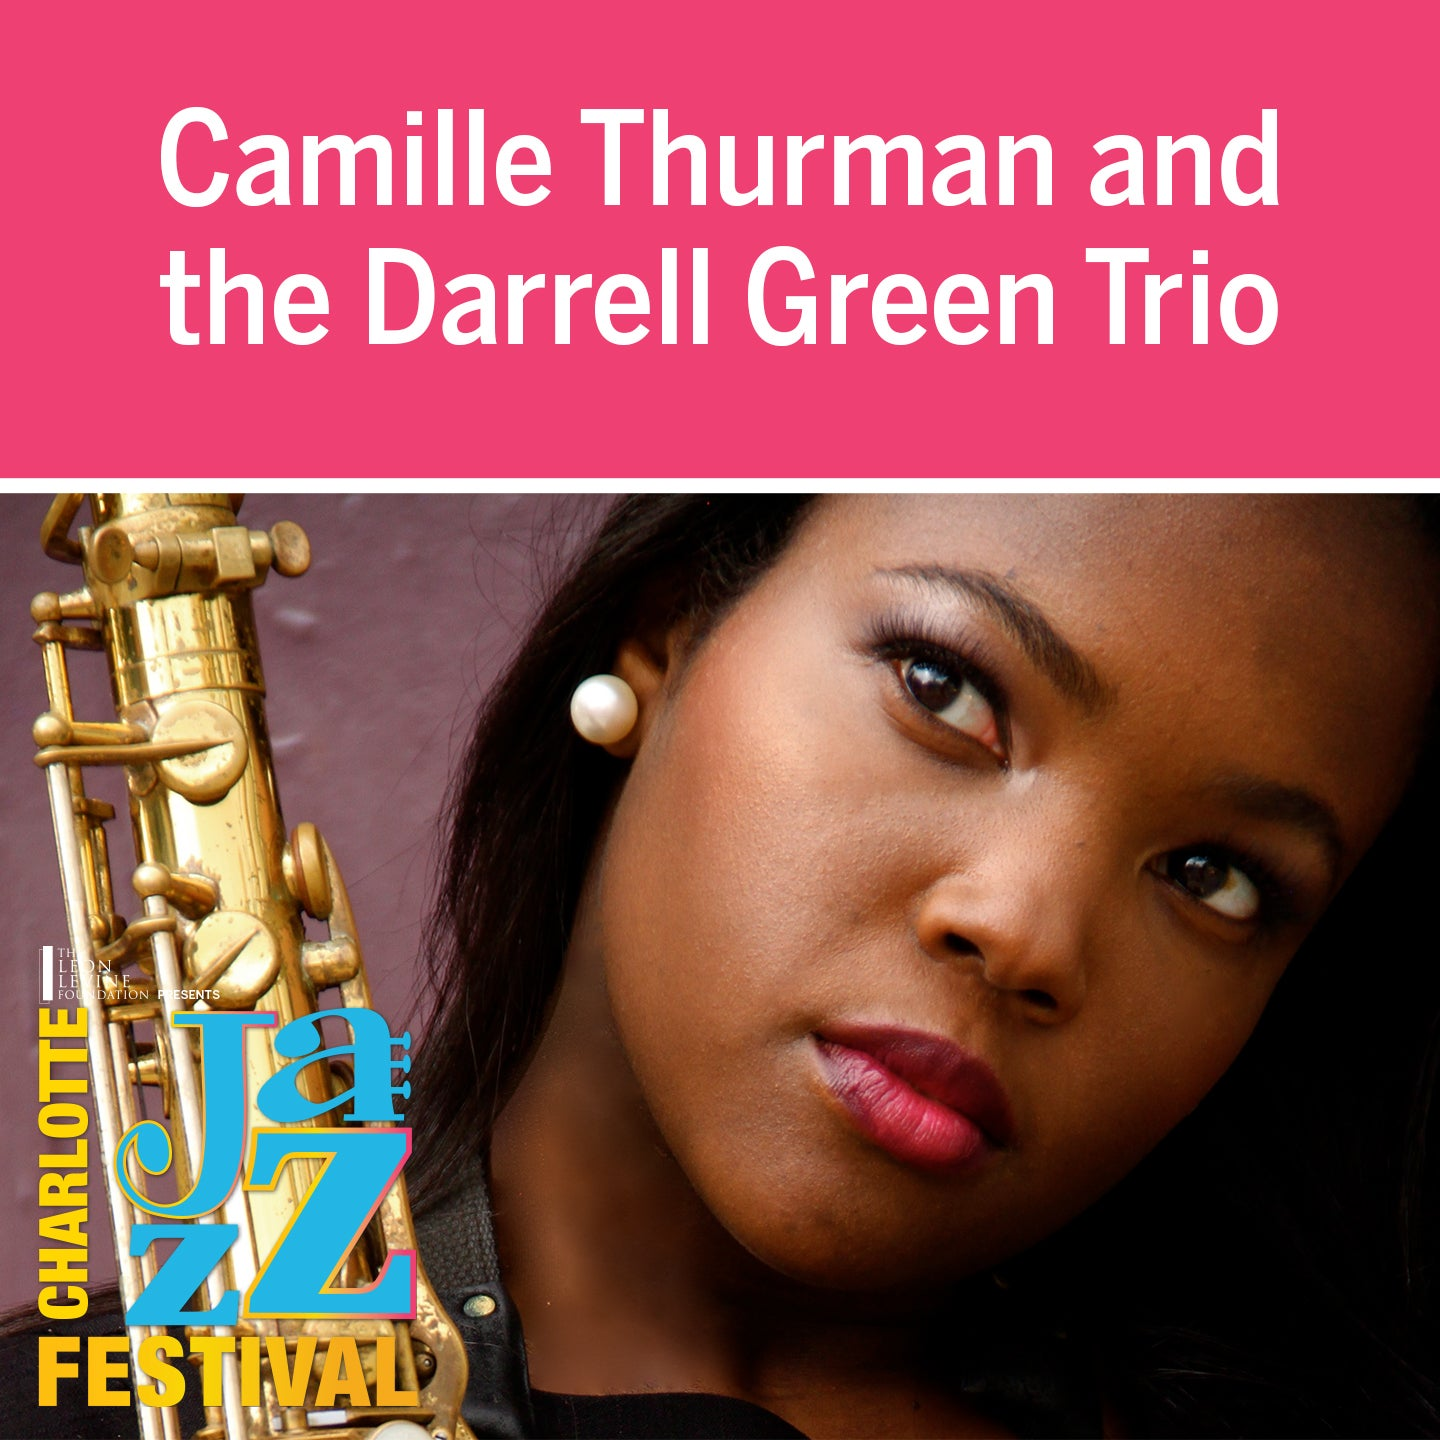 Camille Thurman and the Darrell Green Trio